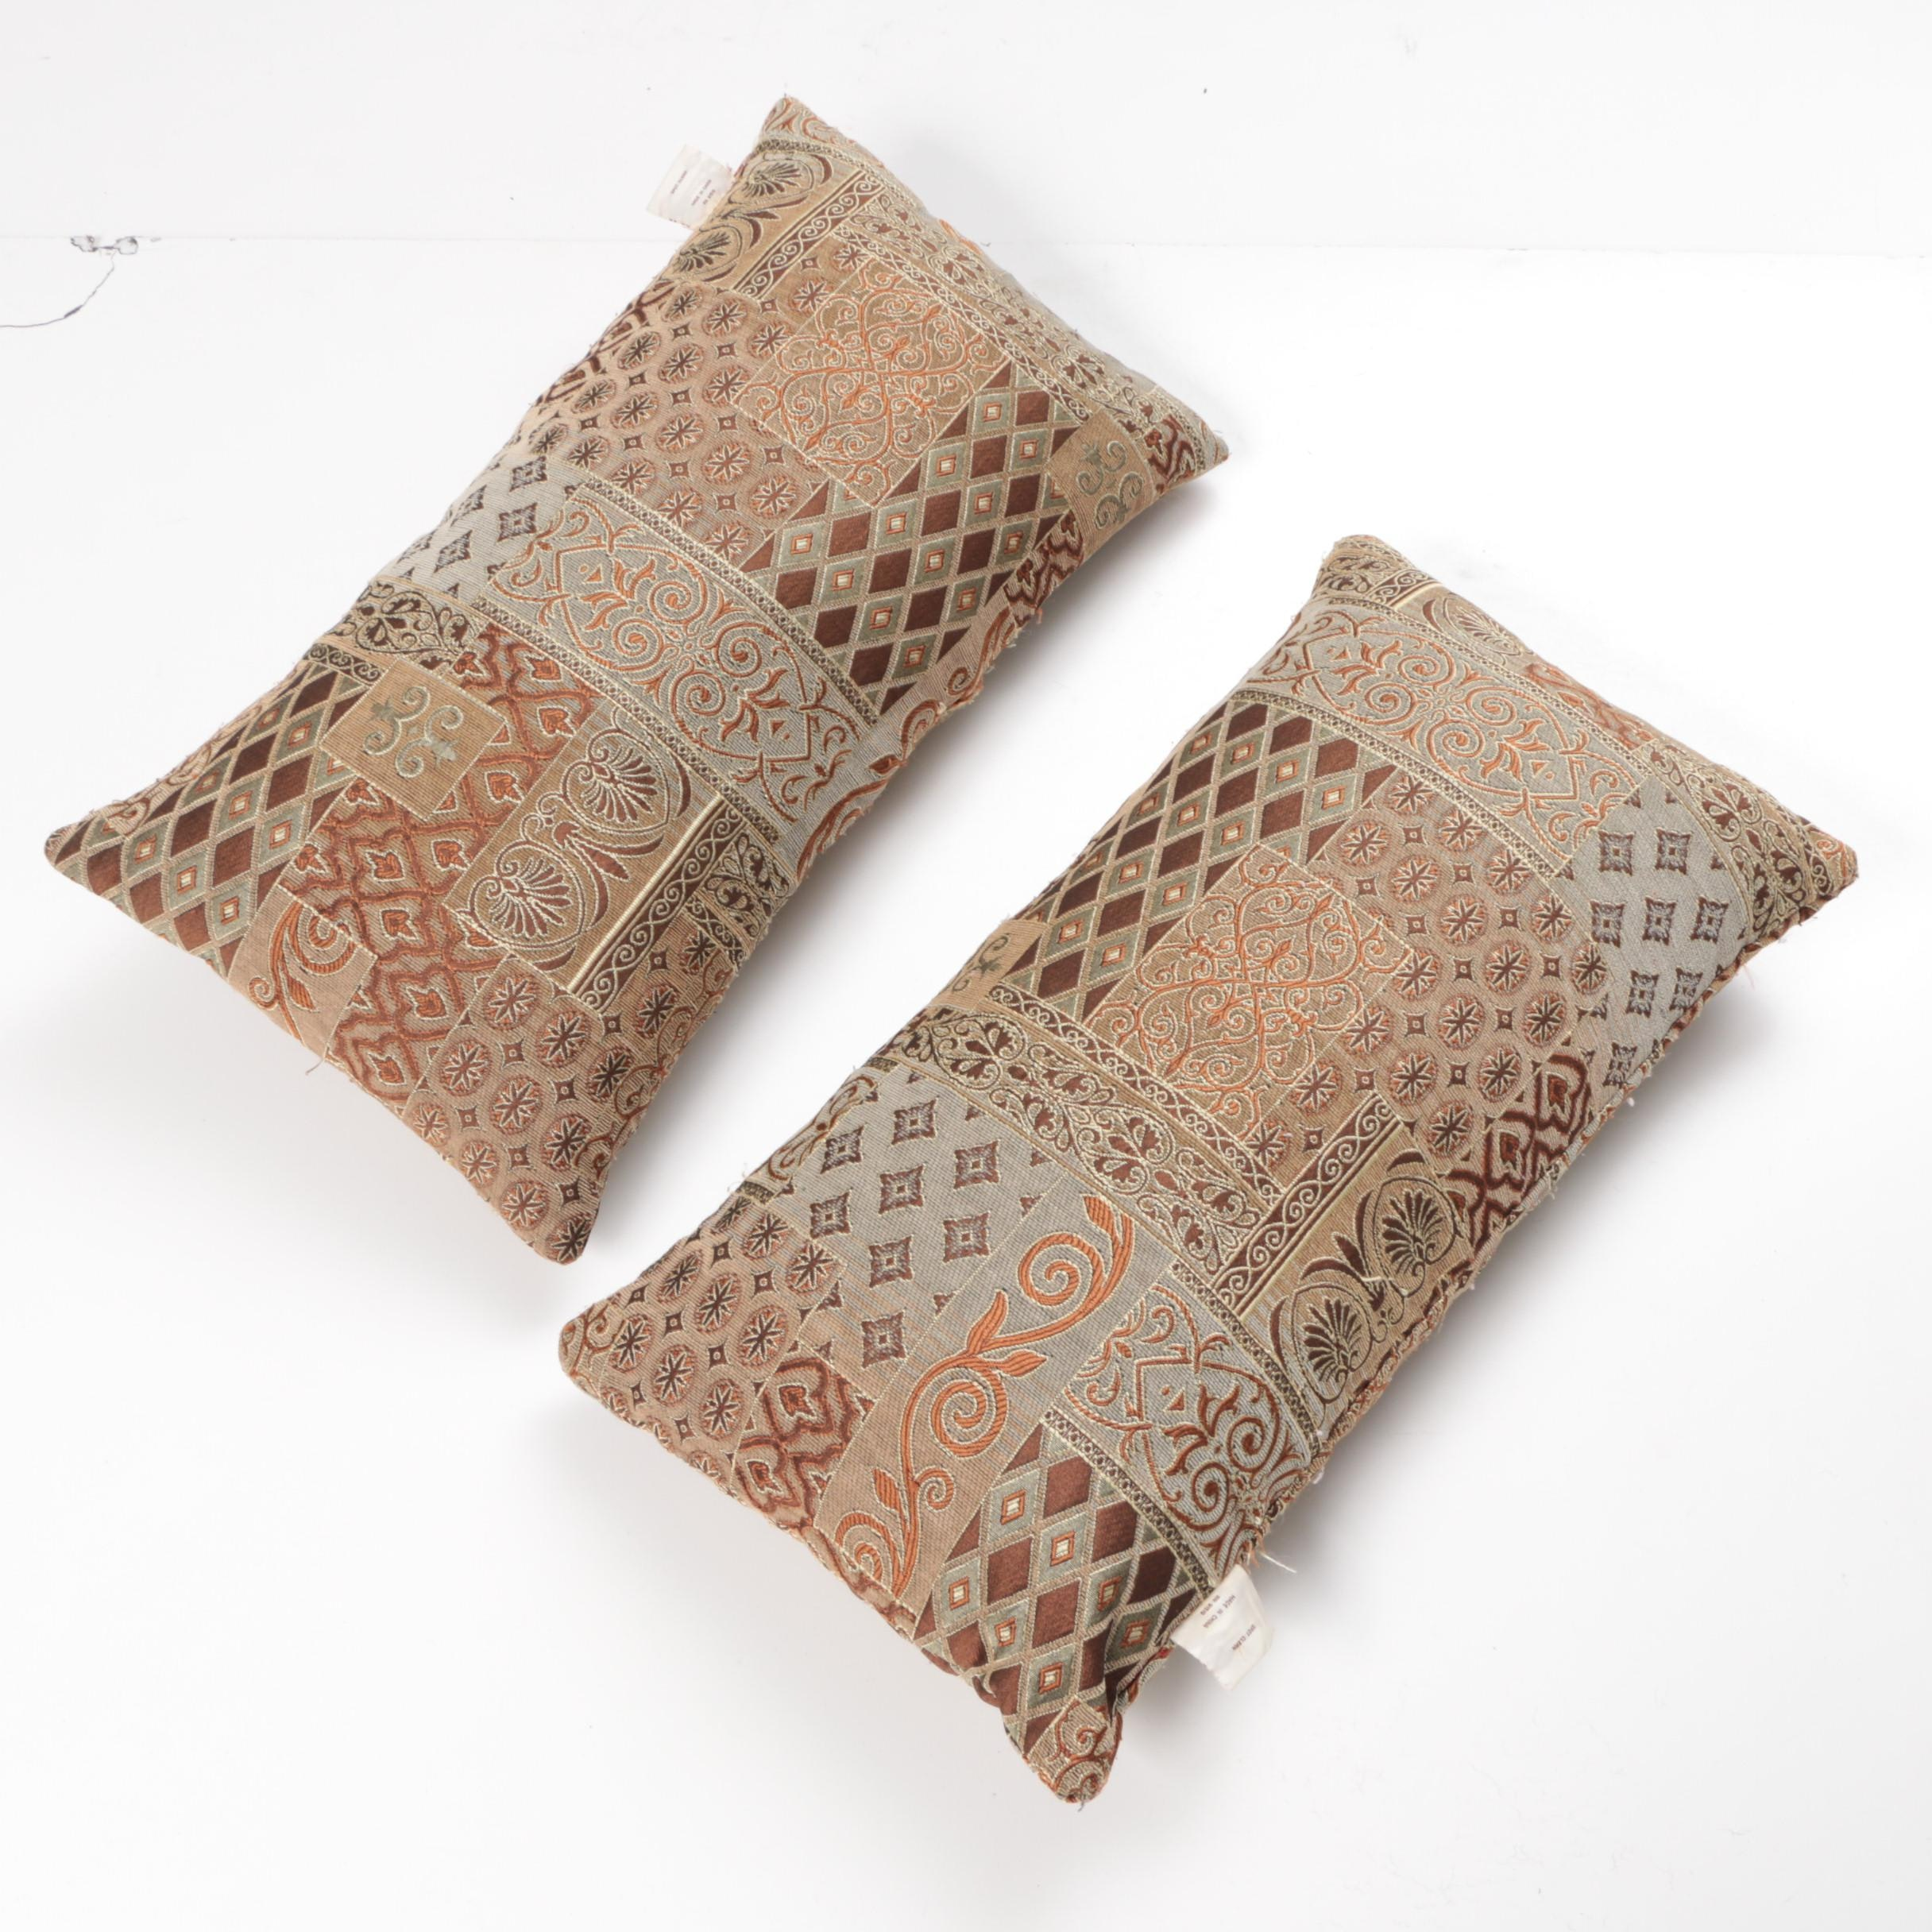 Two Decorative Throw Pillows